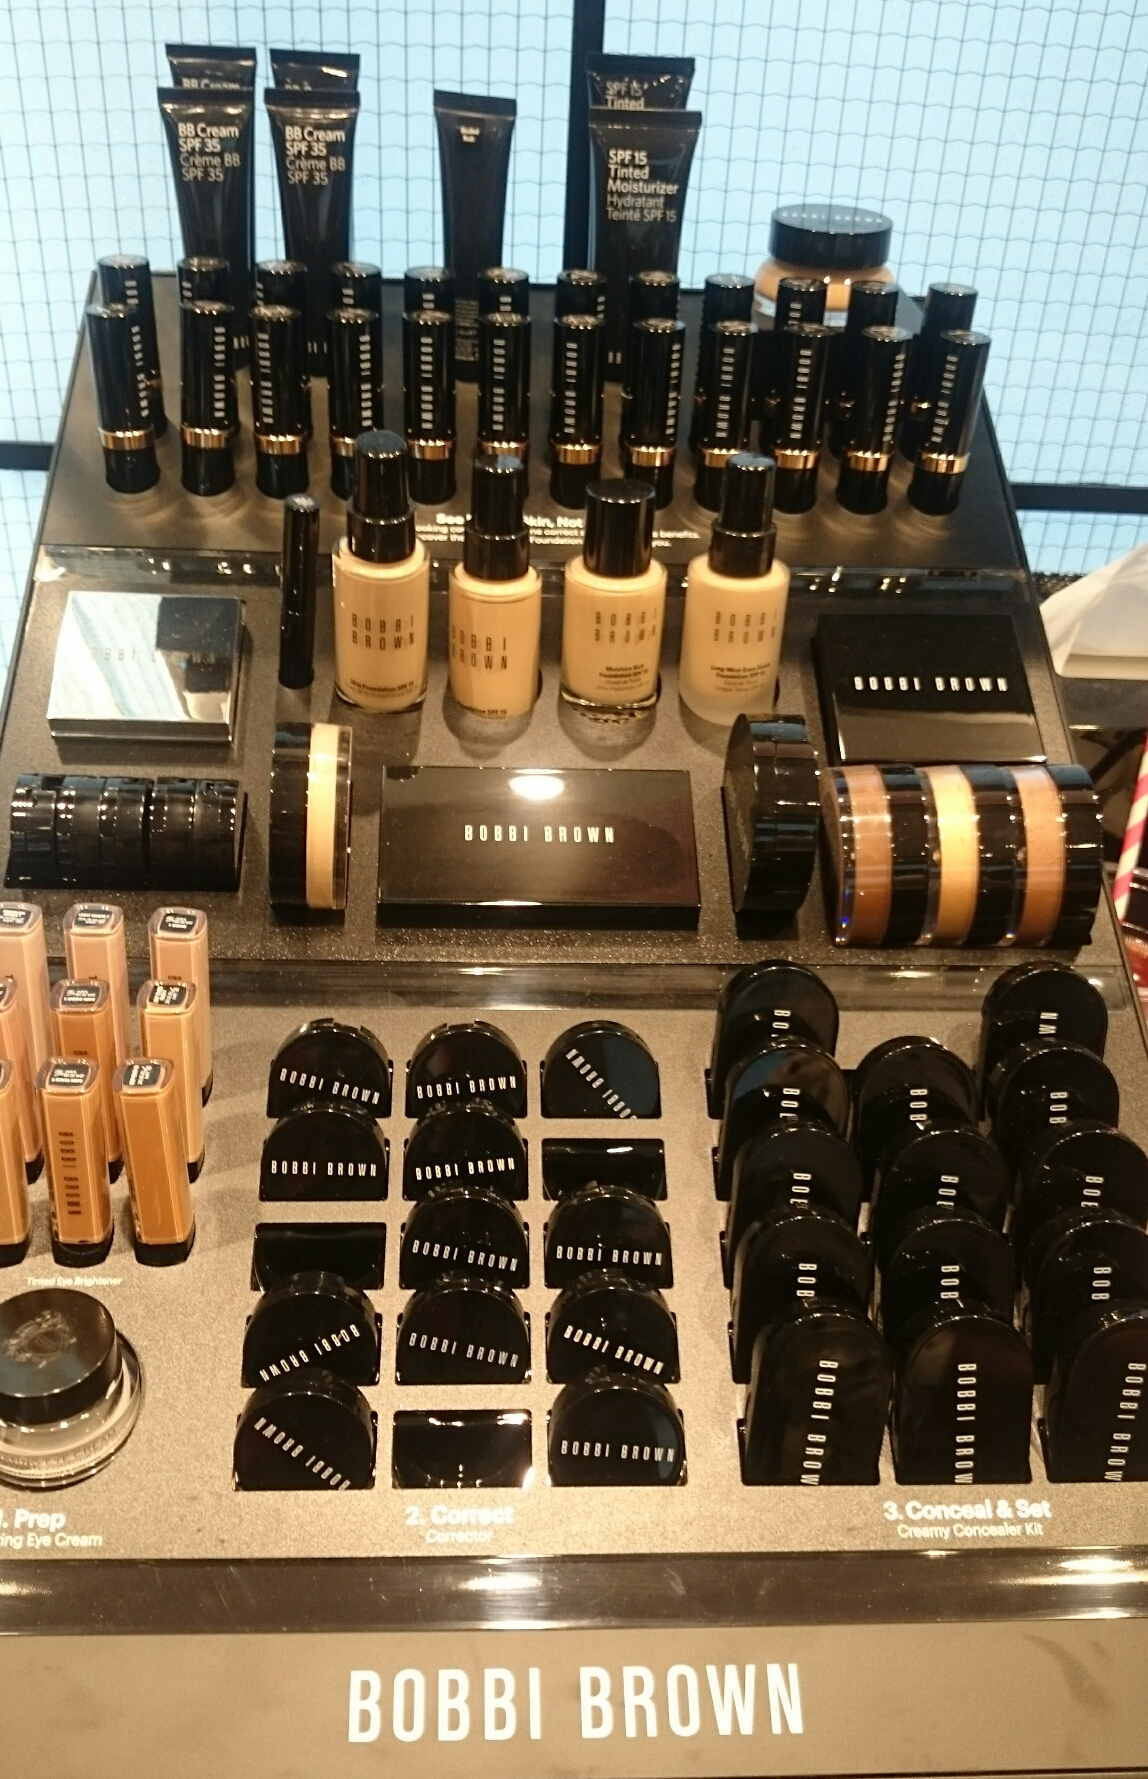 Bobbi Brown store Mumbai